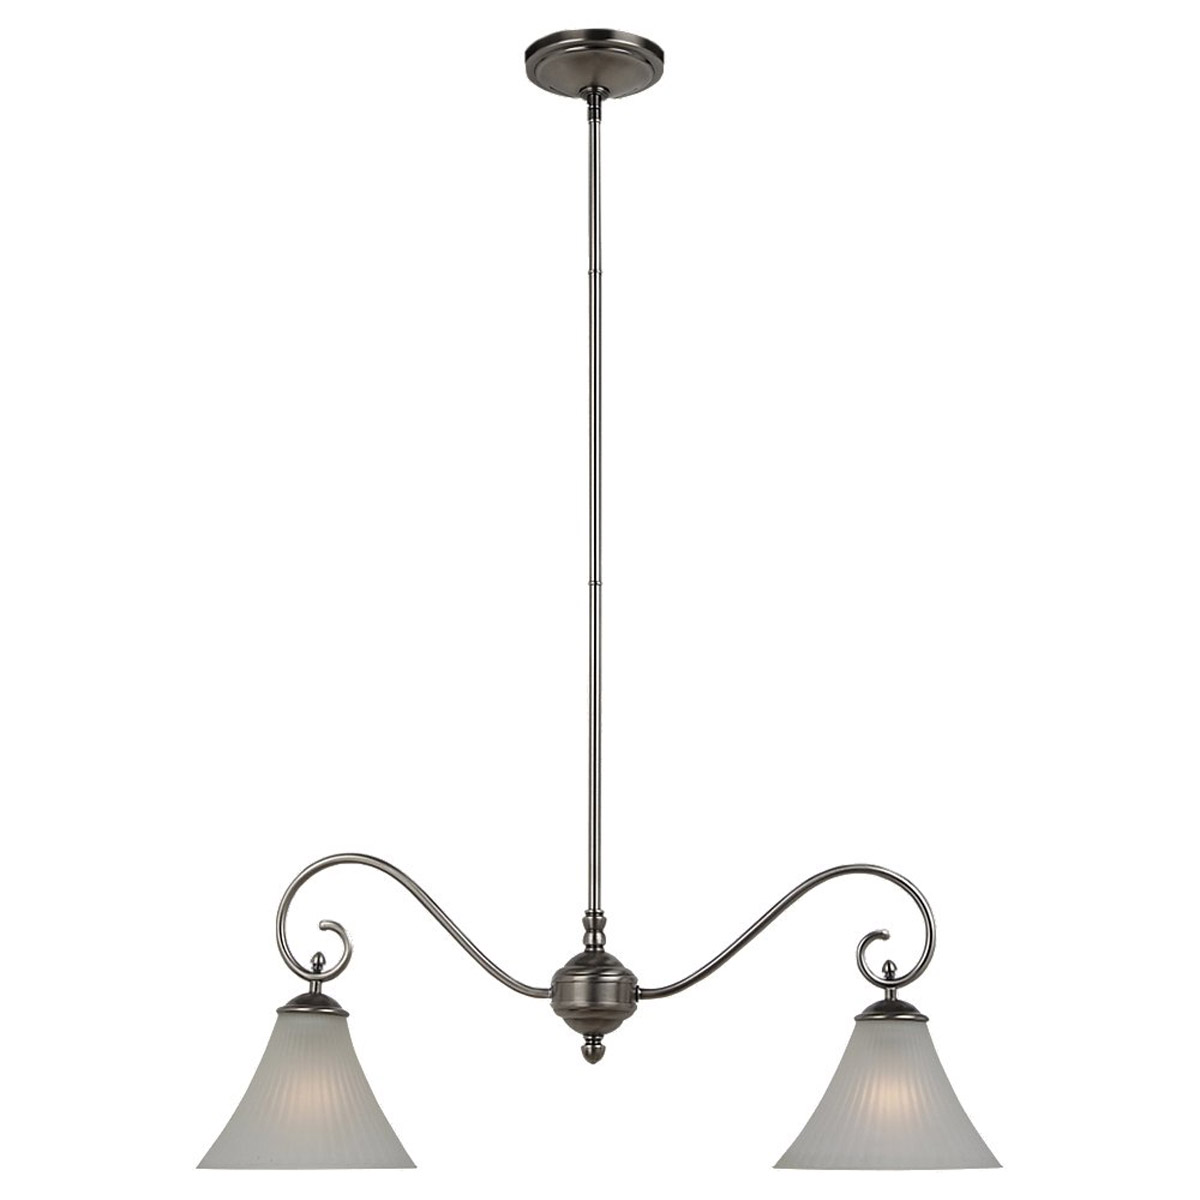 Sea Gull Lighting Joliet 2 Light Island Pendant in Antique Brushed Nickel 66935-965 photo